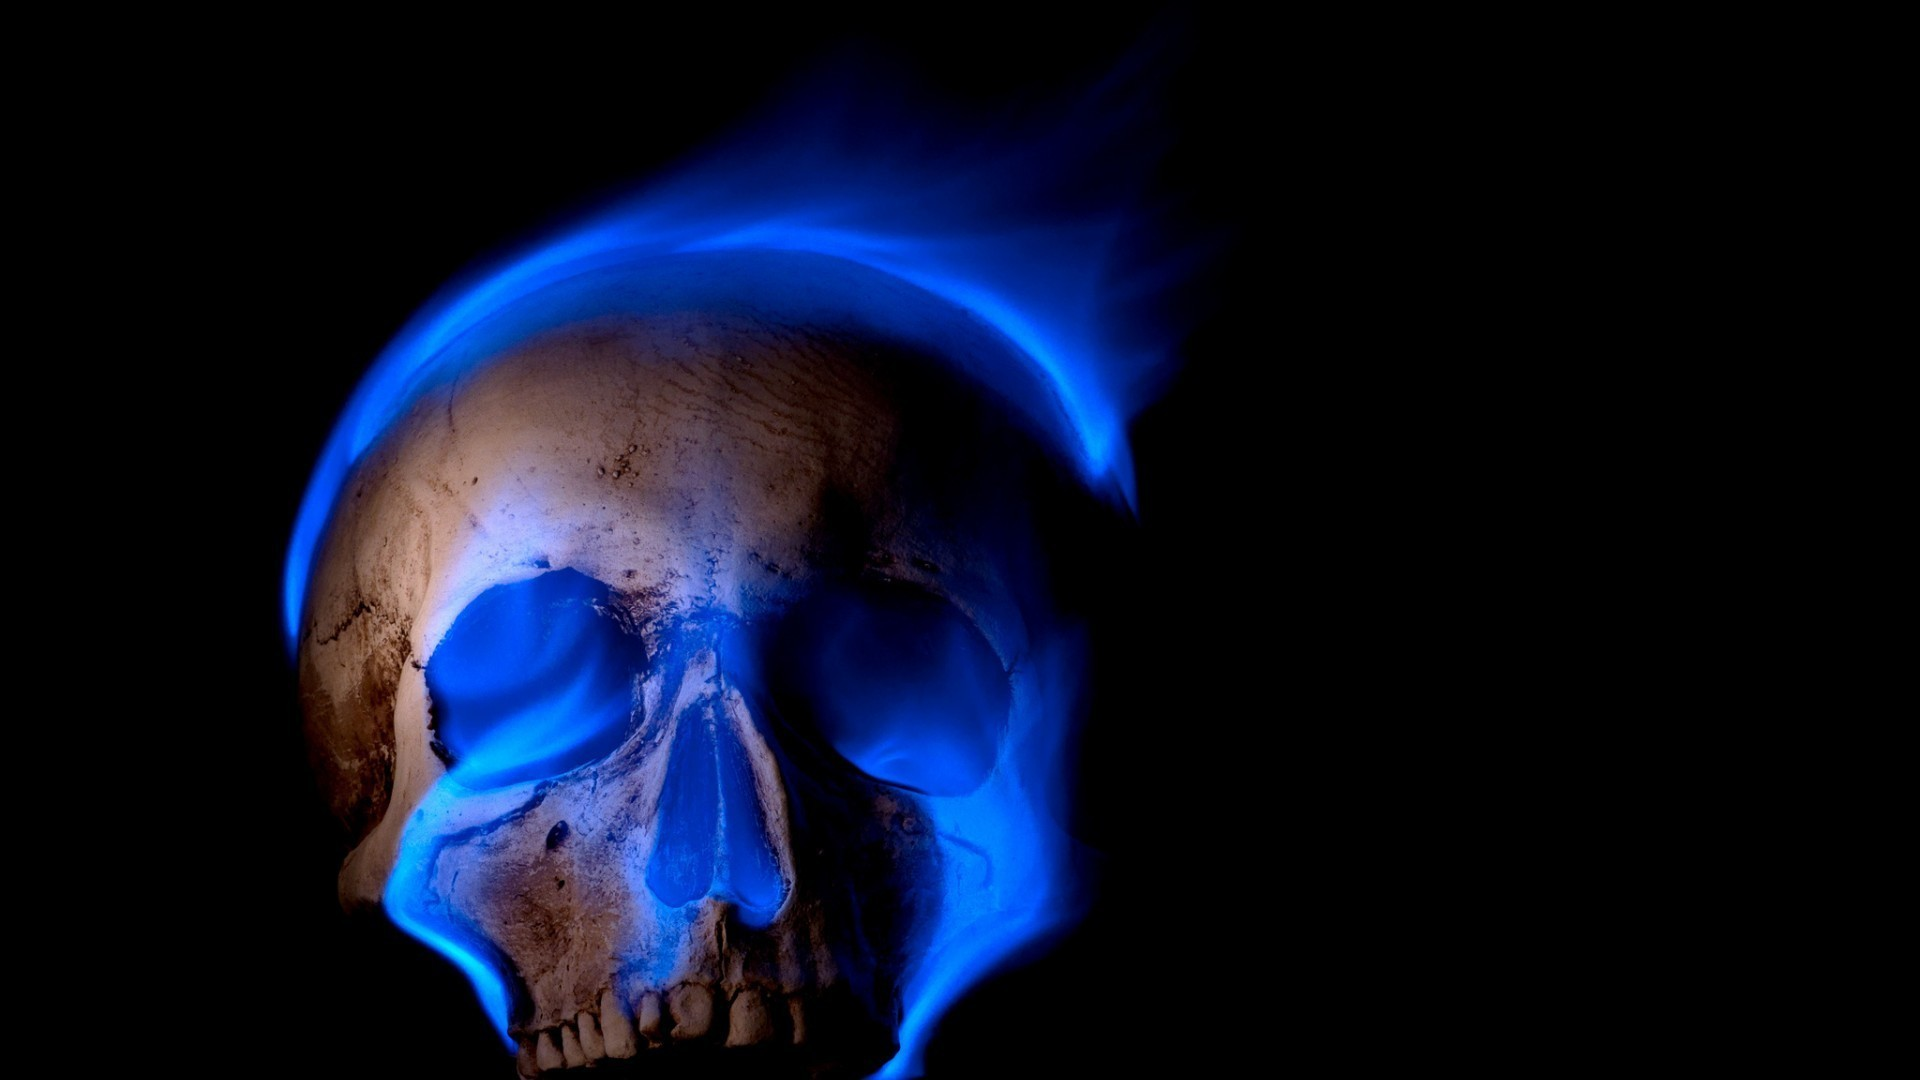 1920x1080  digital Art, Skull, Black Background, Teeth, Burning, Blue  Flames, Fire, Death, Spooky, Gothic Wallpapers HD / Desktop and Mobile  Backgrounds